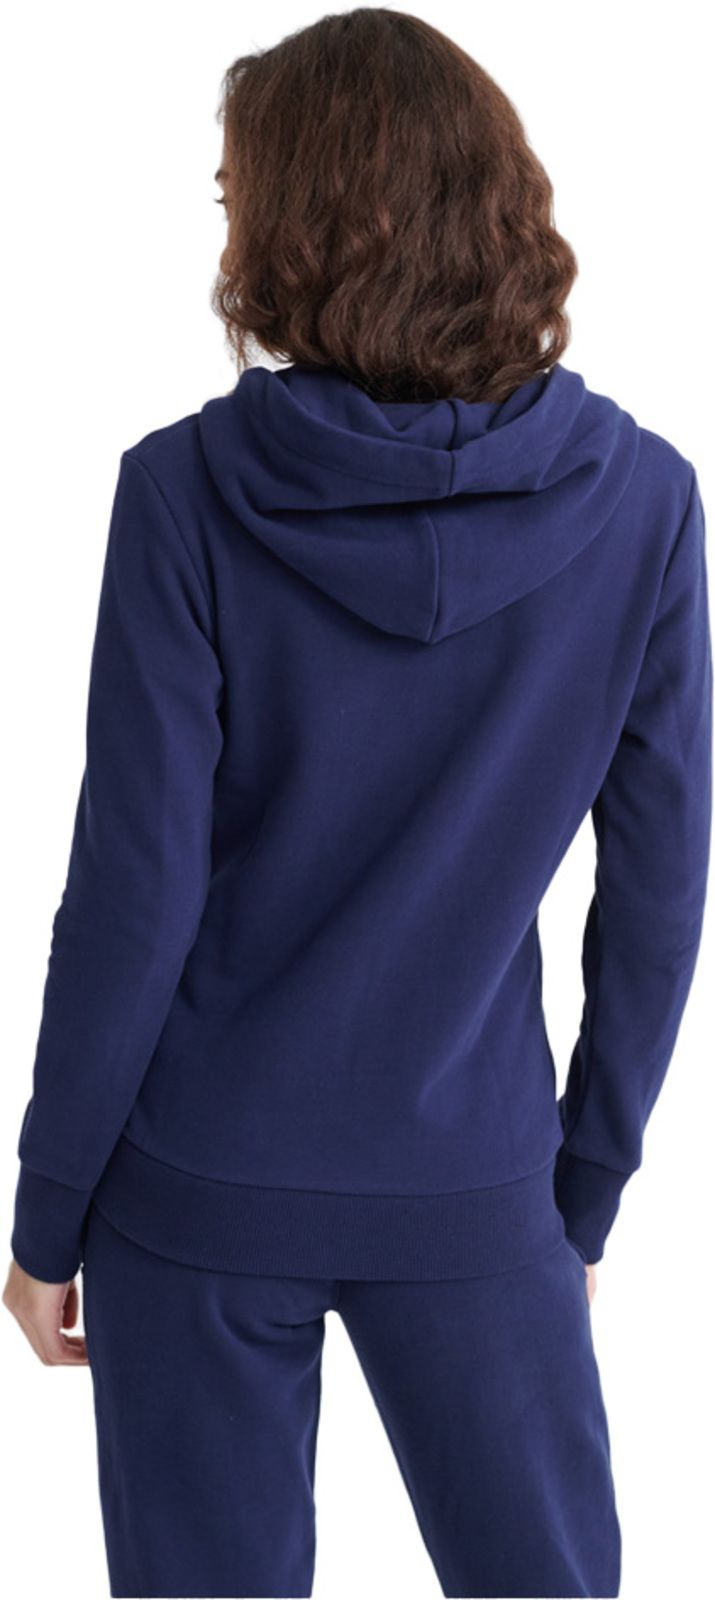 Superdry Women's Orange Label Zip Front Hoodie Navy